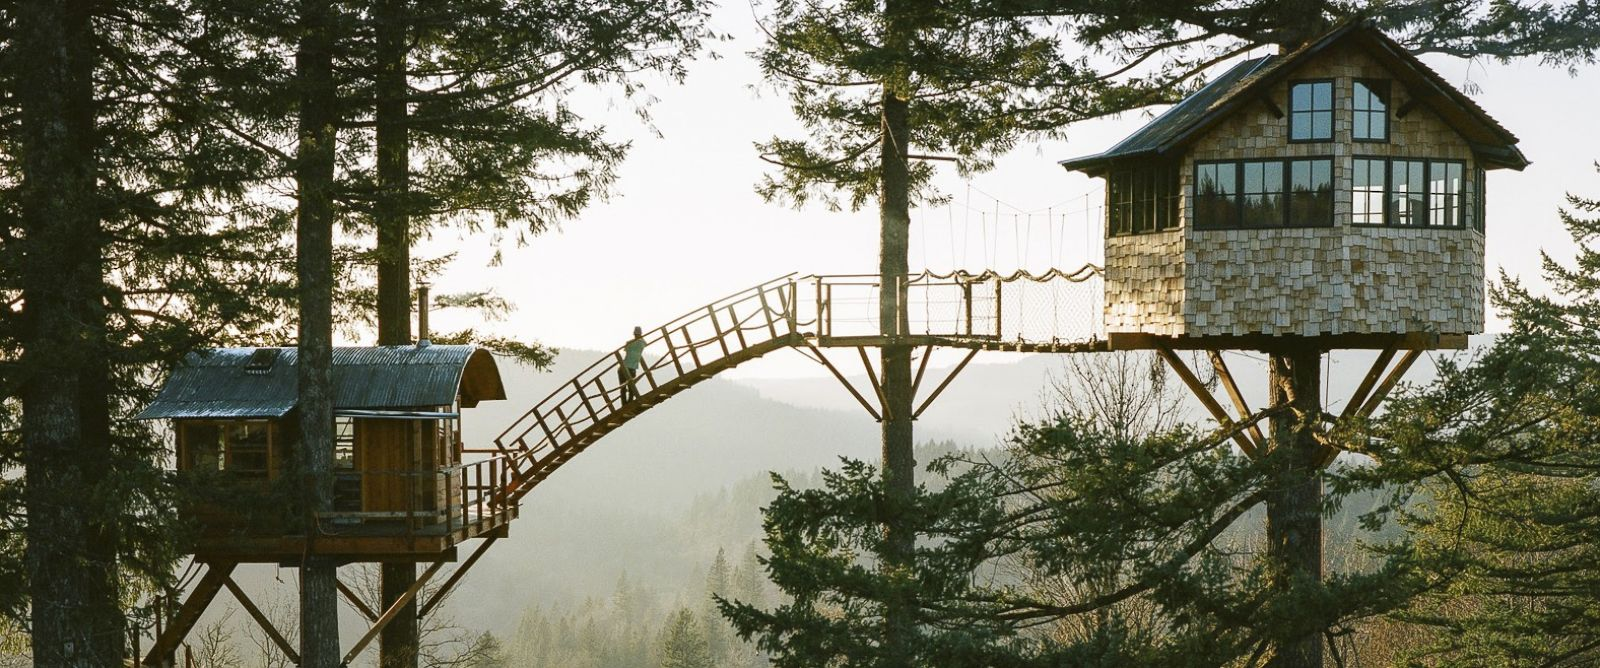 Washington Man Builds Incredible Treehouse With Its Own